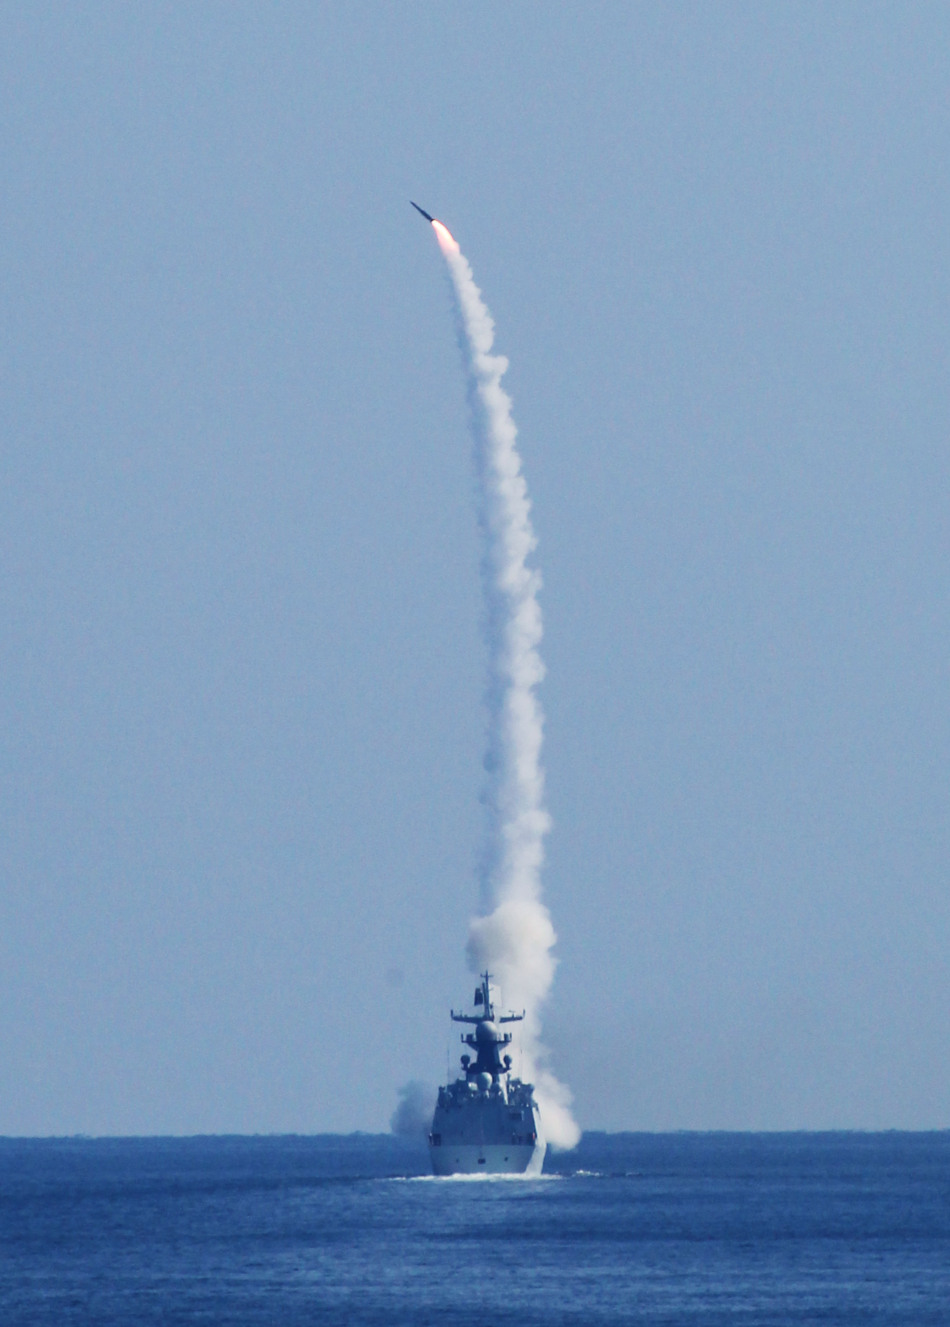 Type+054A+Jiangkai-II+class+frigate+of+the+People%2527s+Liberation+Army+Navy+%2528PLA+Navy%2529+test+fires+HQ-16+surface+to+air+missile+during+an+exercise+%25282%2529.jpg